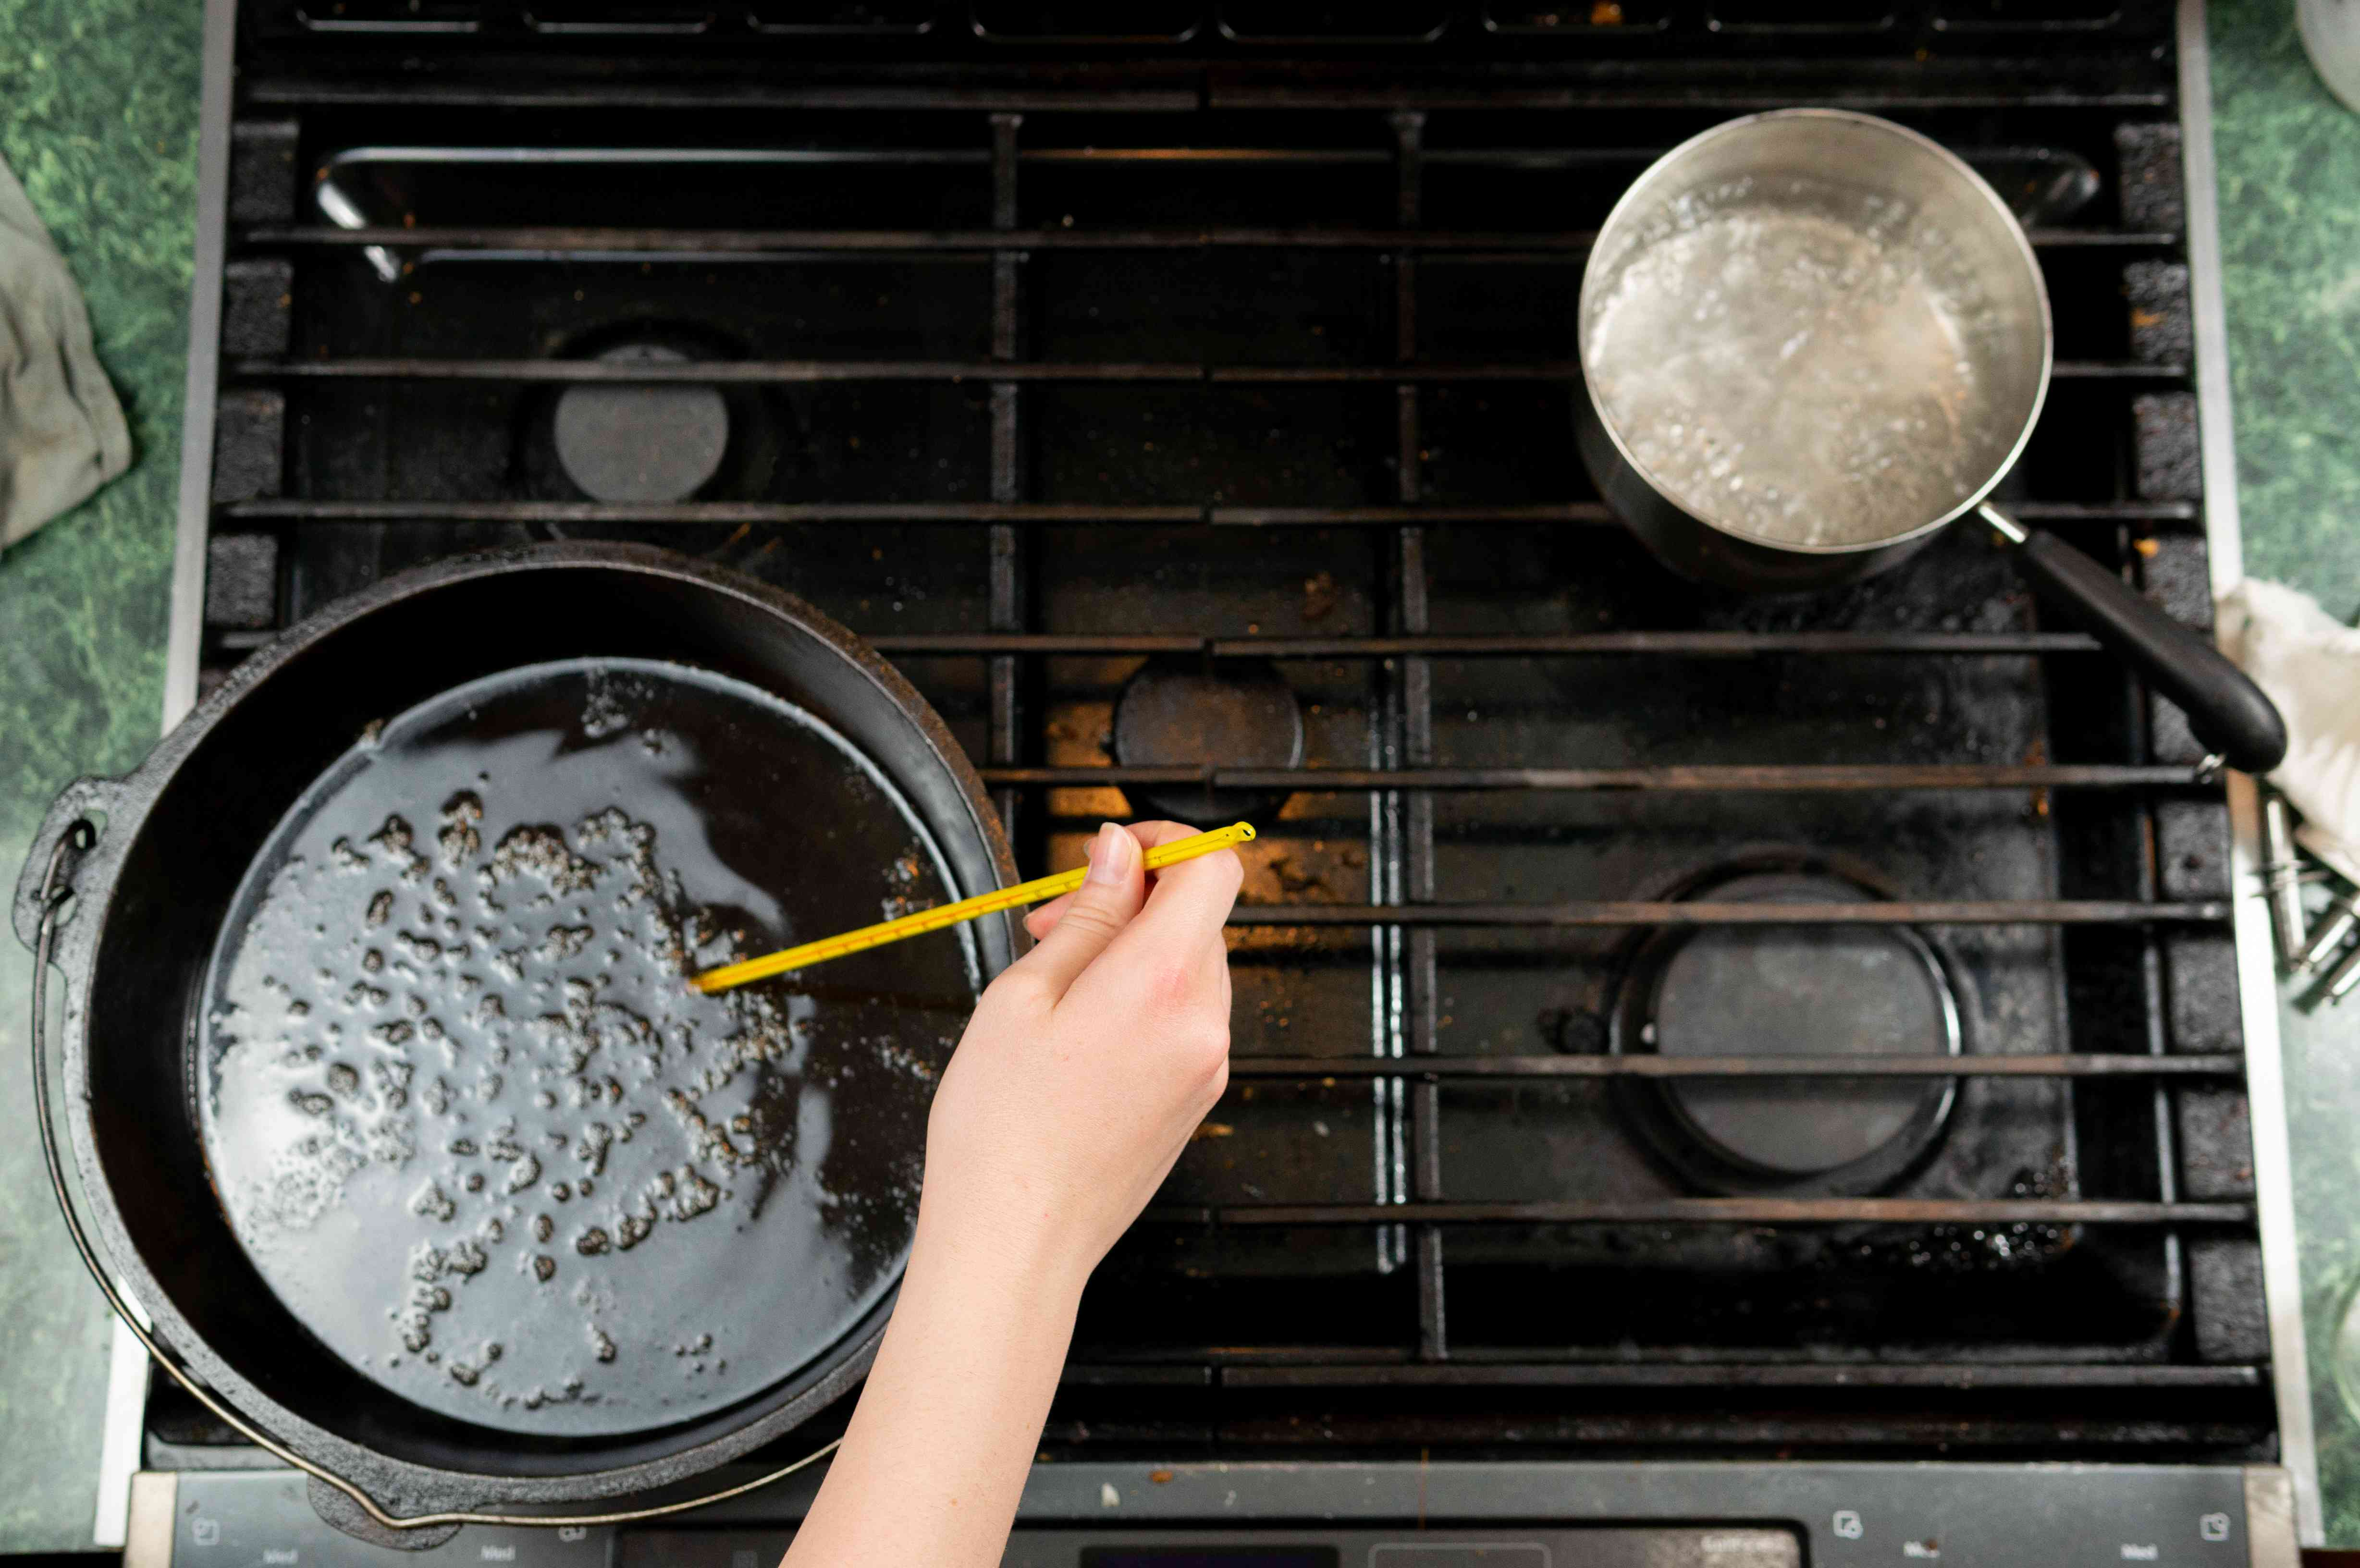 testing boiling sugar on stove with thermometer